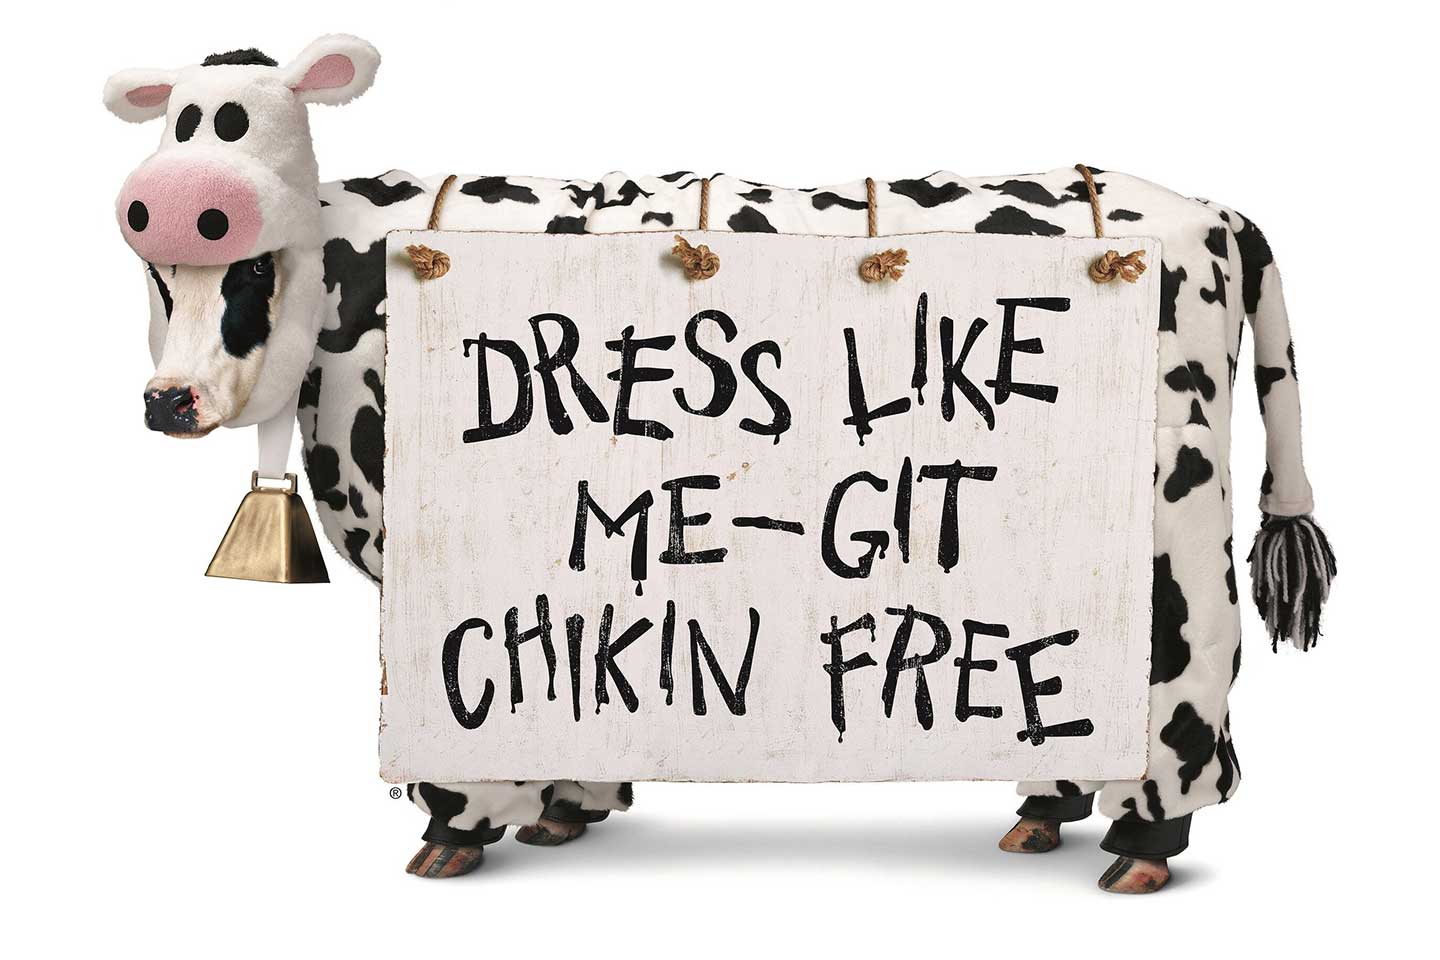 picture about Chick Fil a Application Printable called Chick-fil-A Deals Free of charge Entree in direction of Cow-Dressed Potential buyers Upon